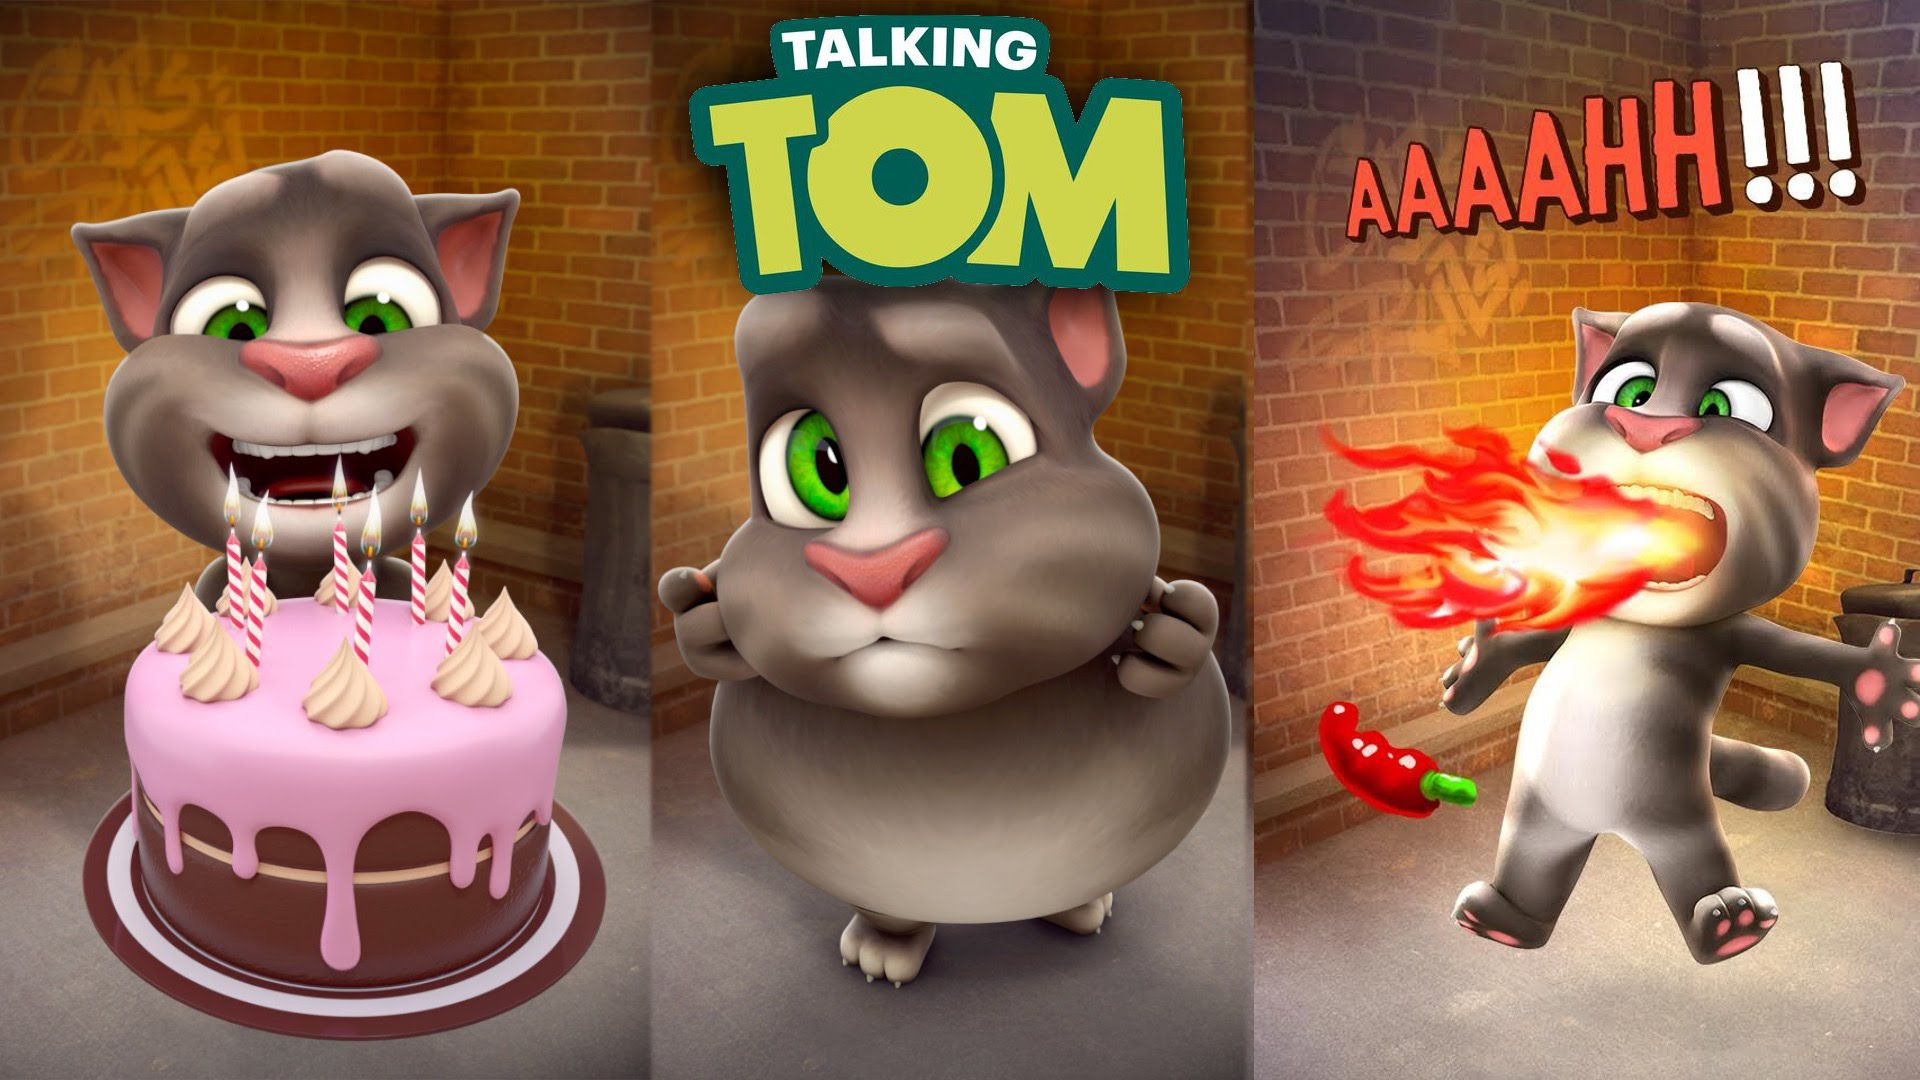 Game Talking Tom Cat